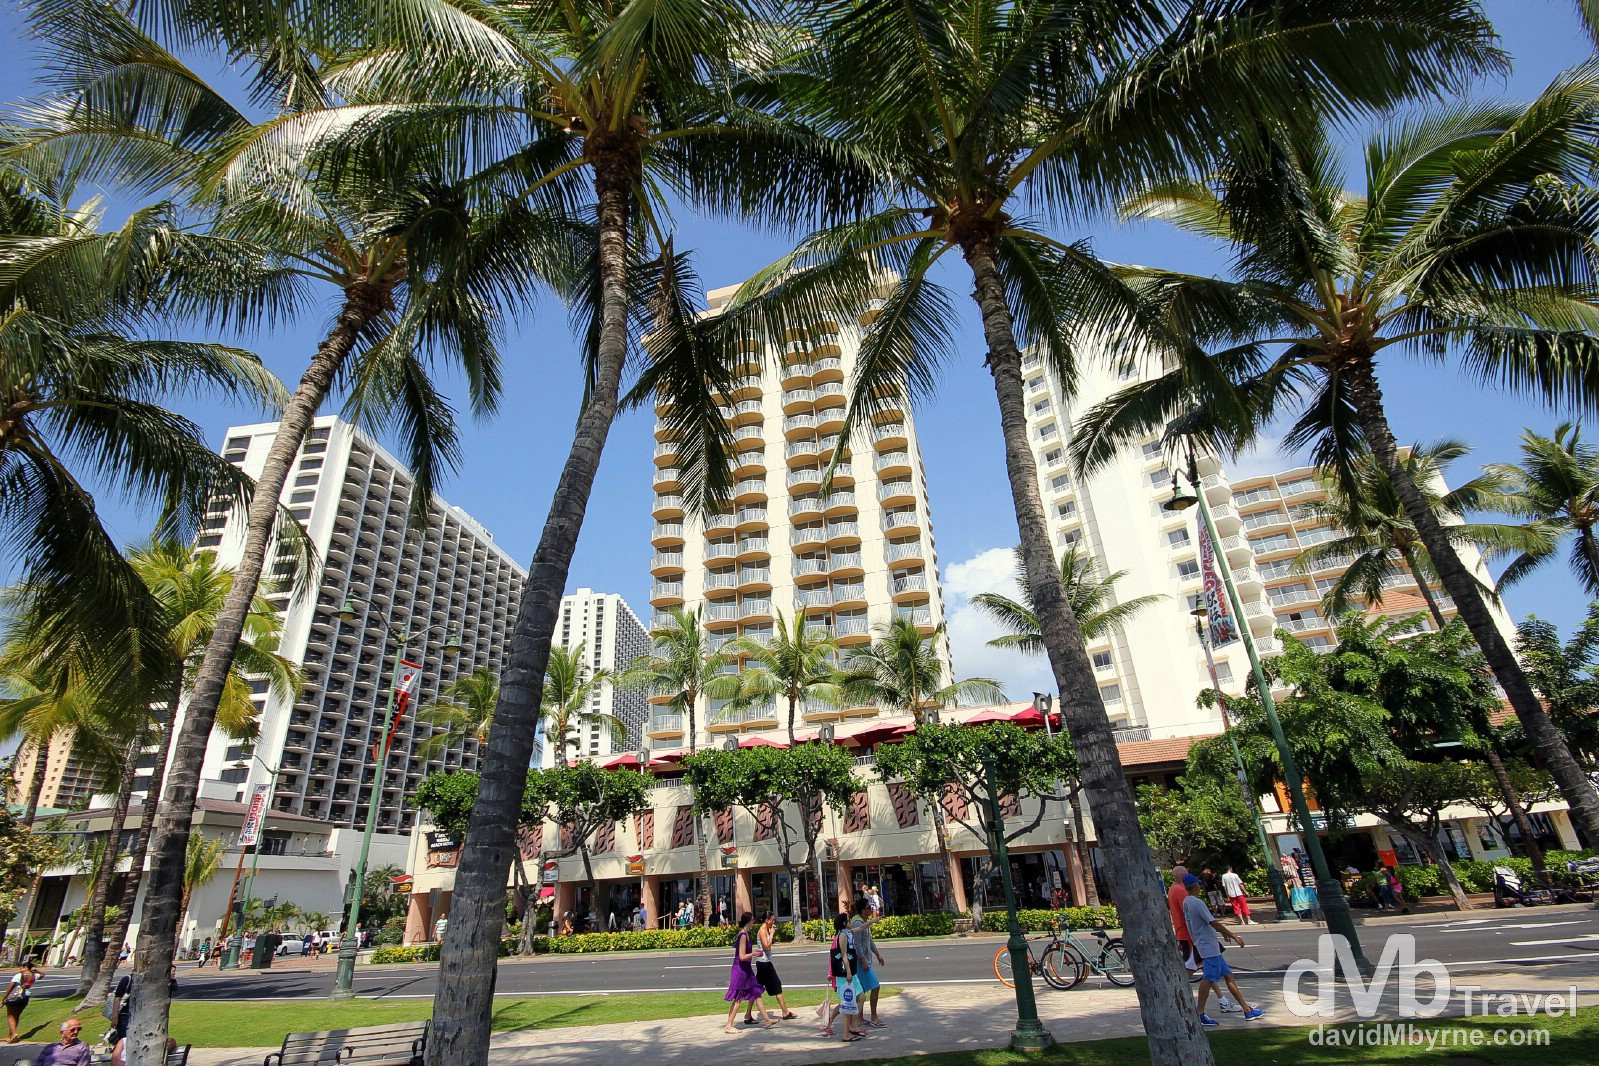 Palm trees & tower blocks on Kalakaua Avenue fronting Waikiki Beach on Oahu, Hawaii, USA. March 8th 2013.